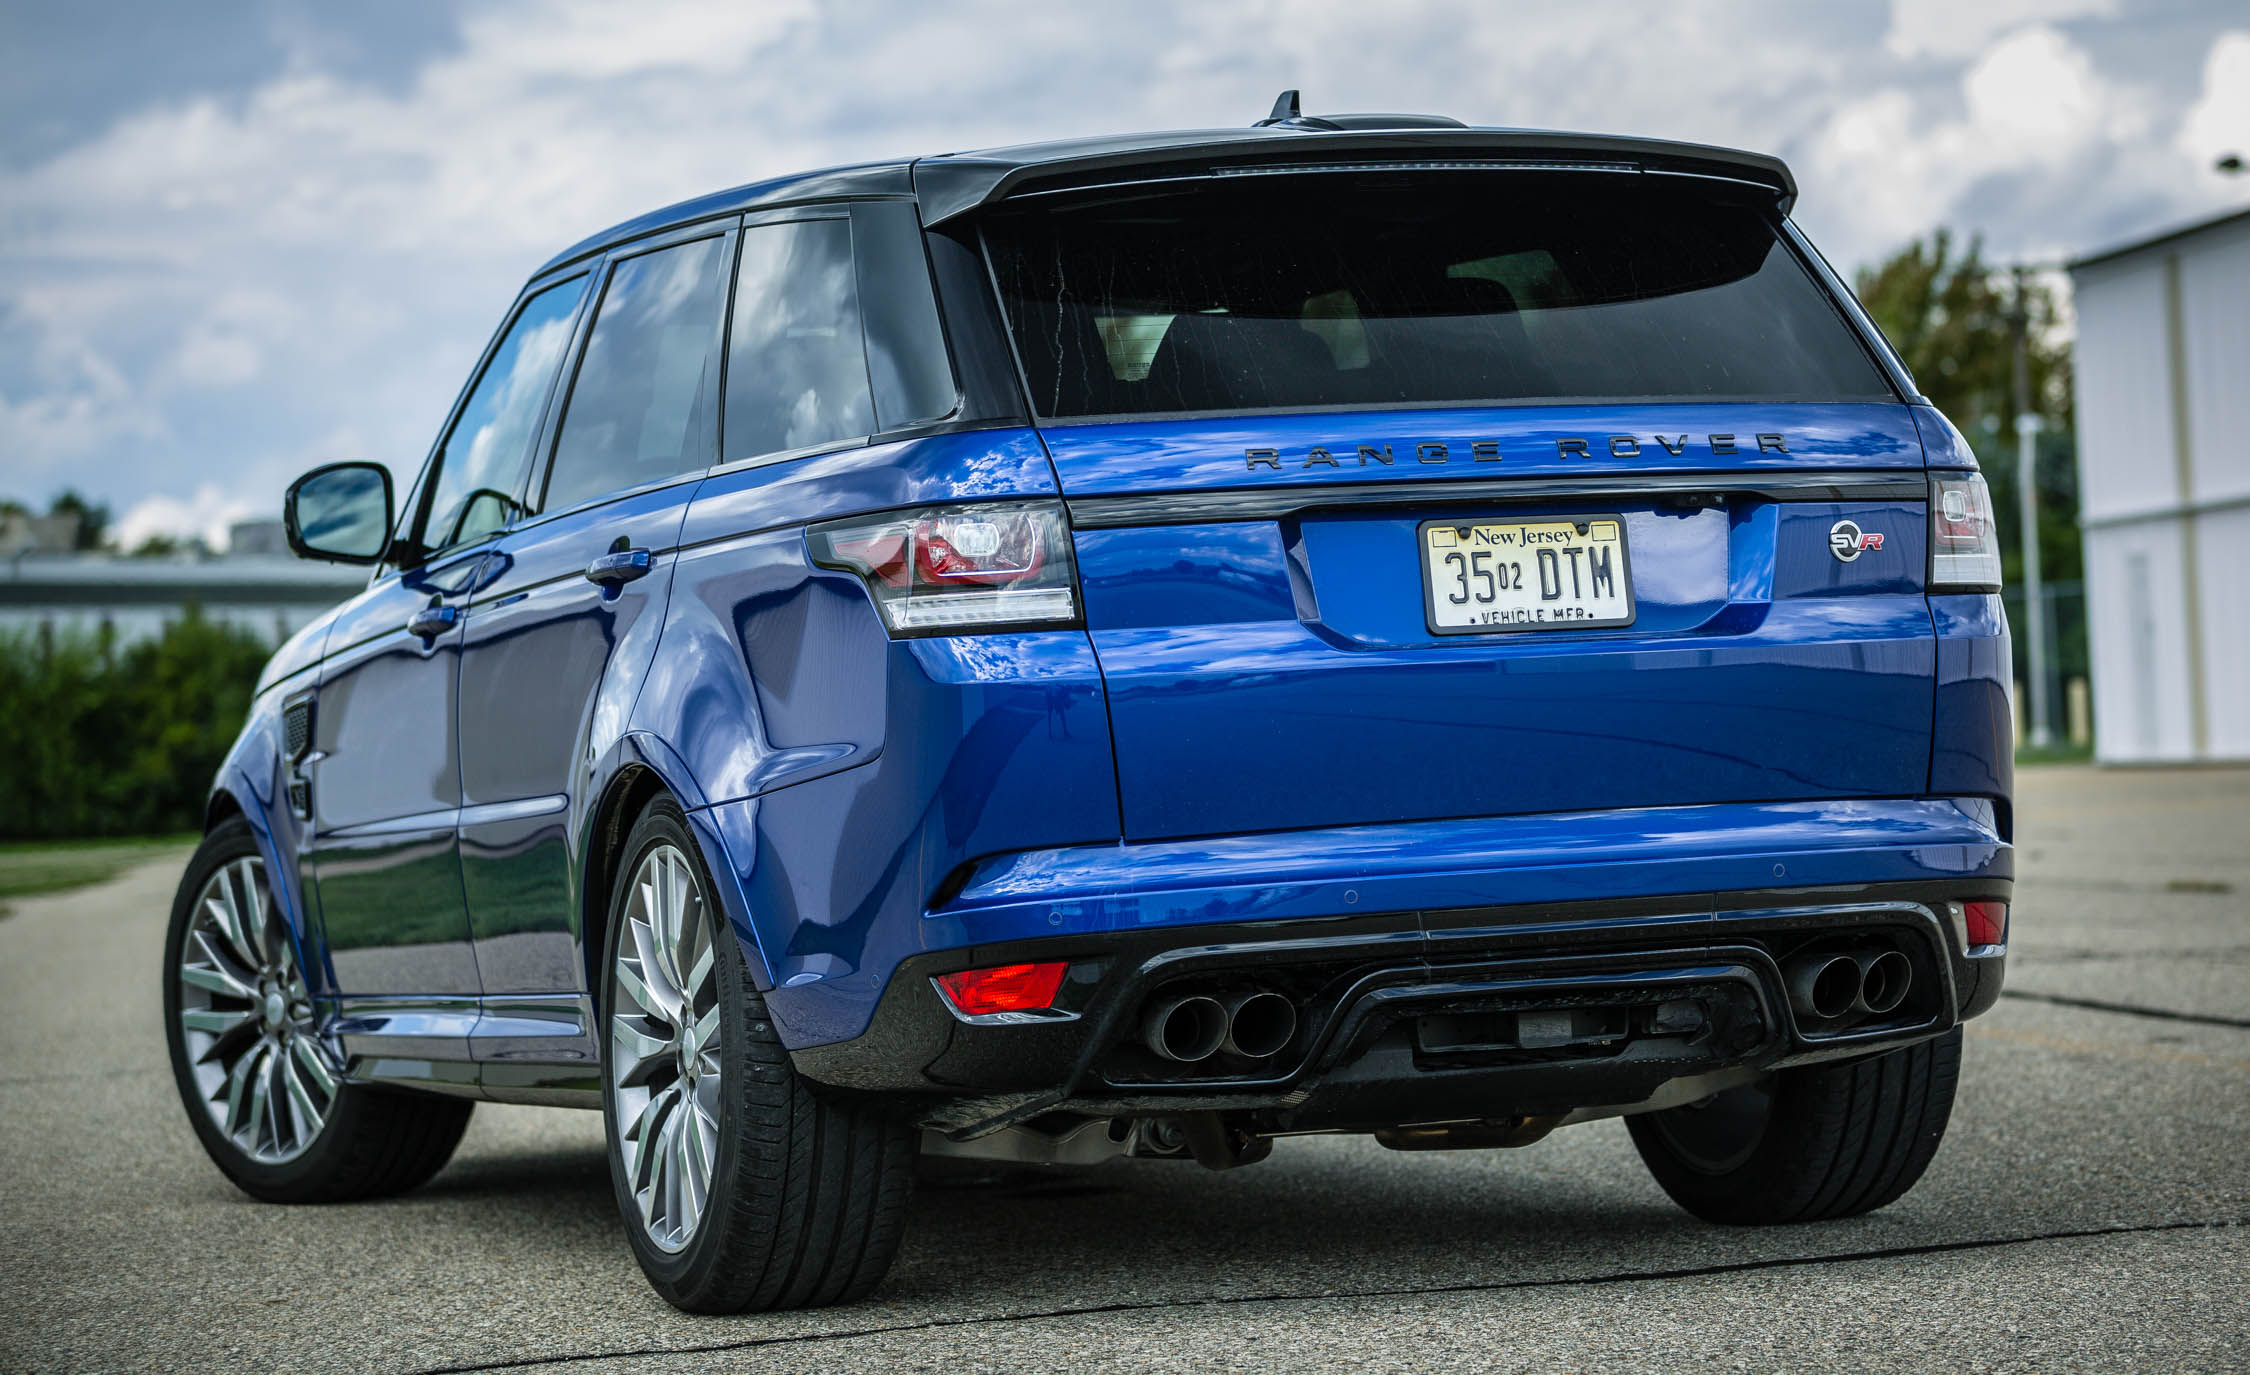 2016 Land Rover Range Rover Sport SVR (View 1 of 7)